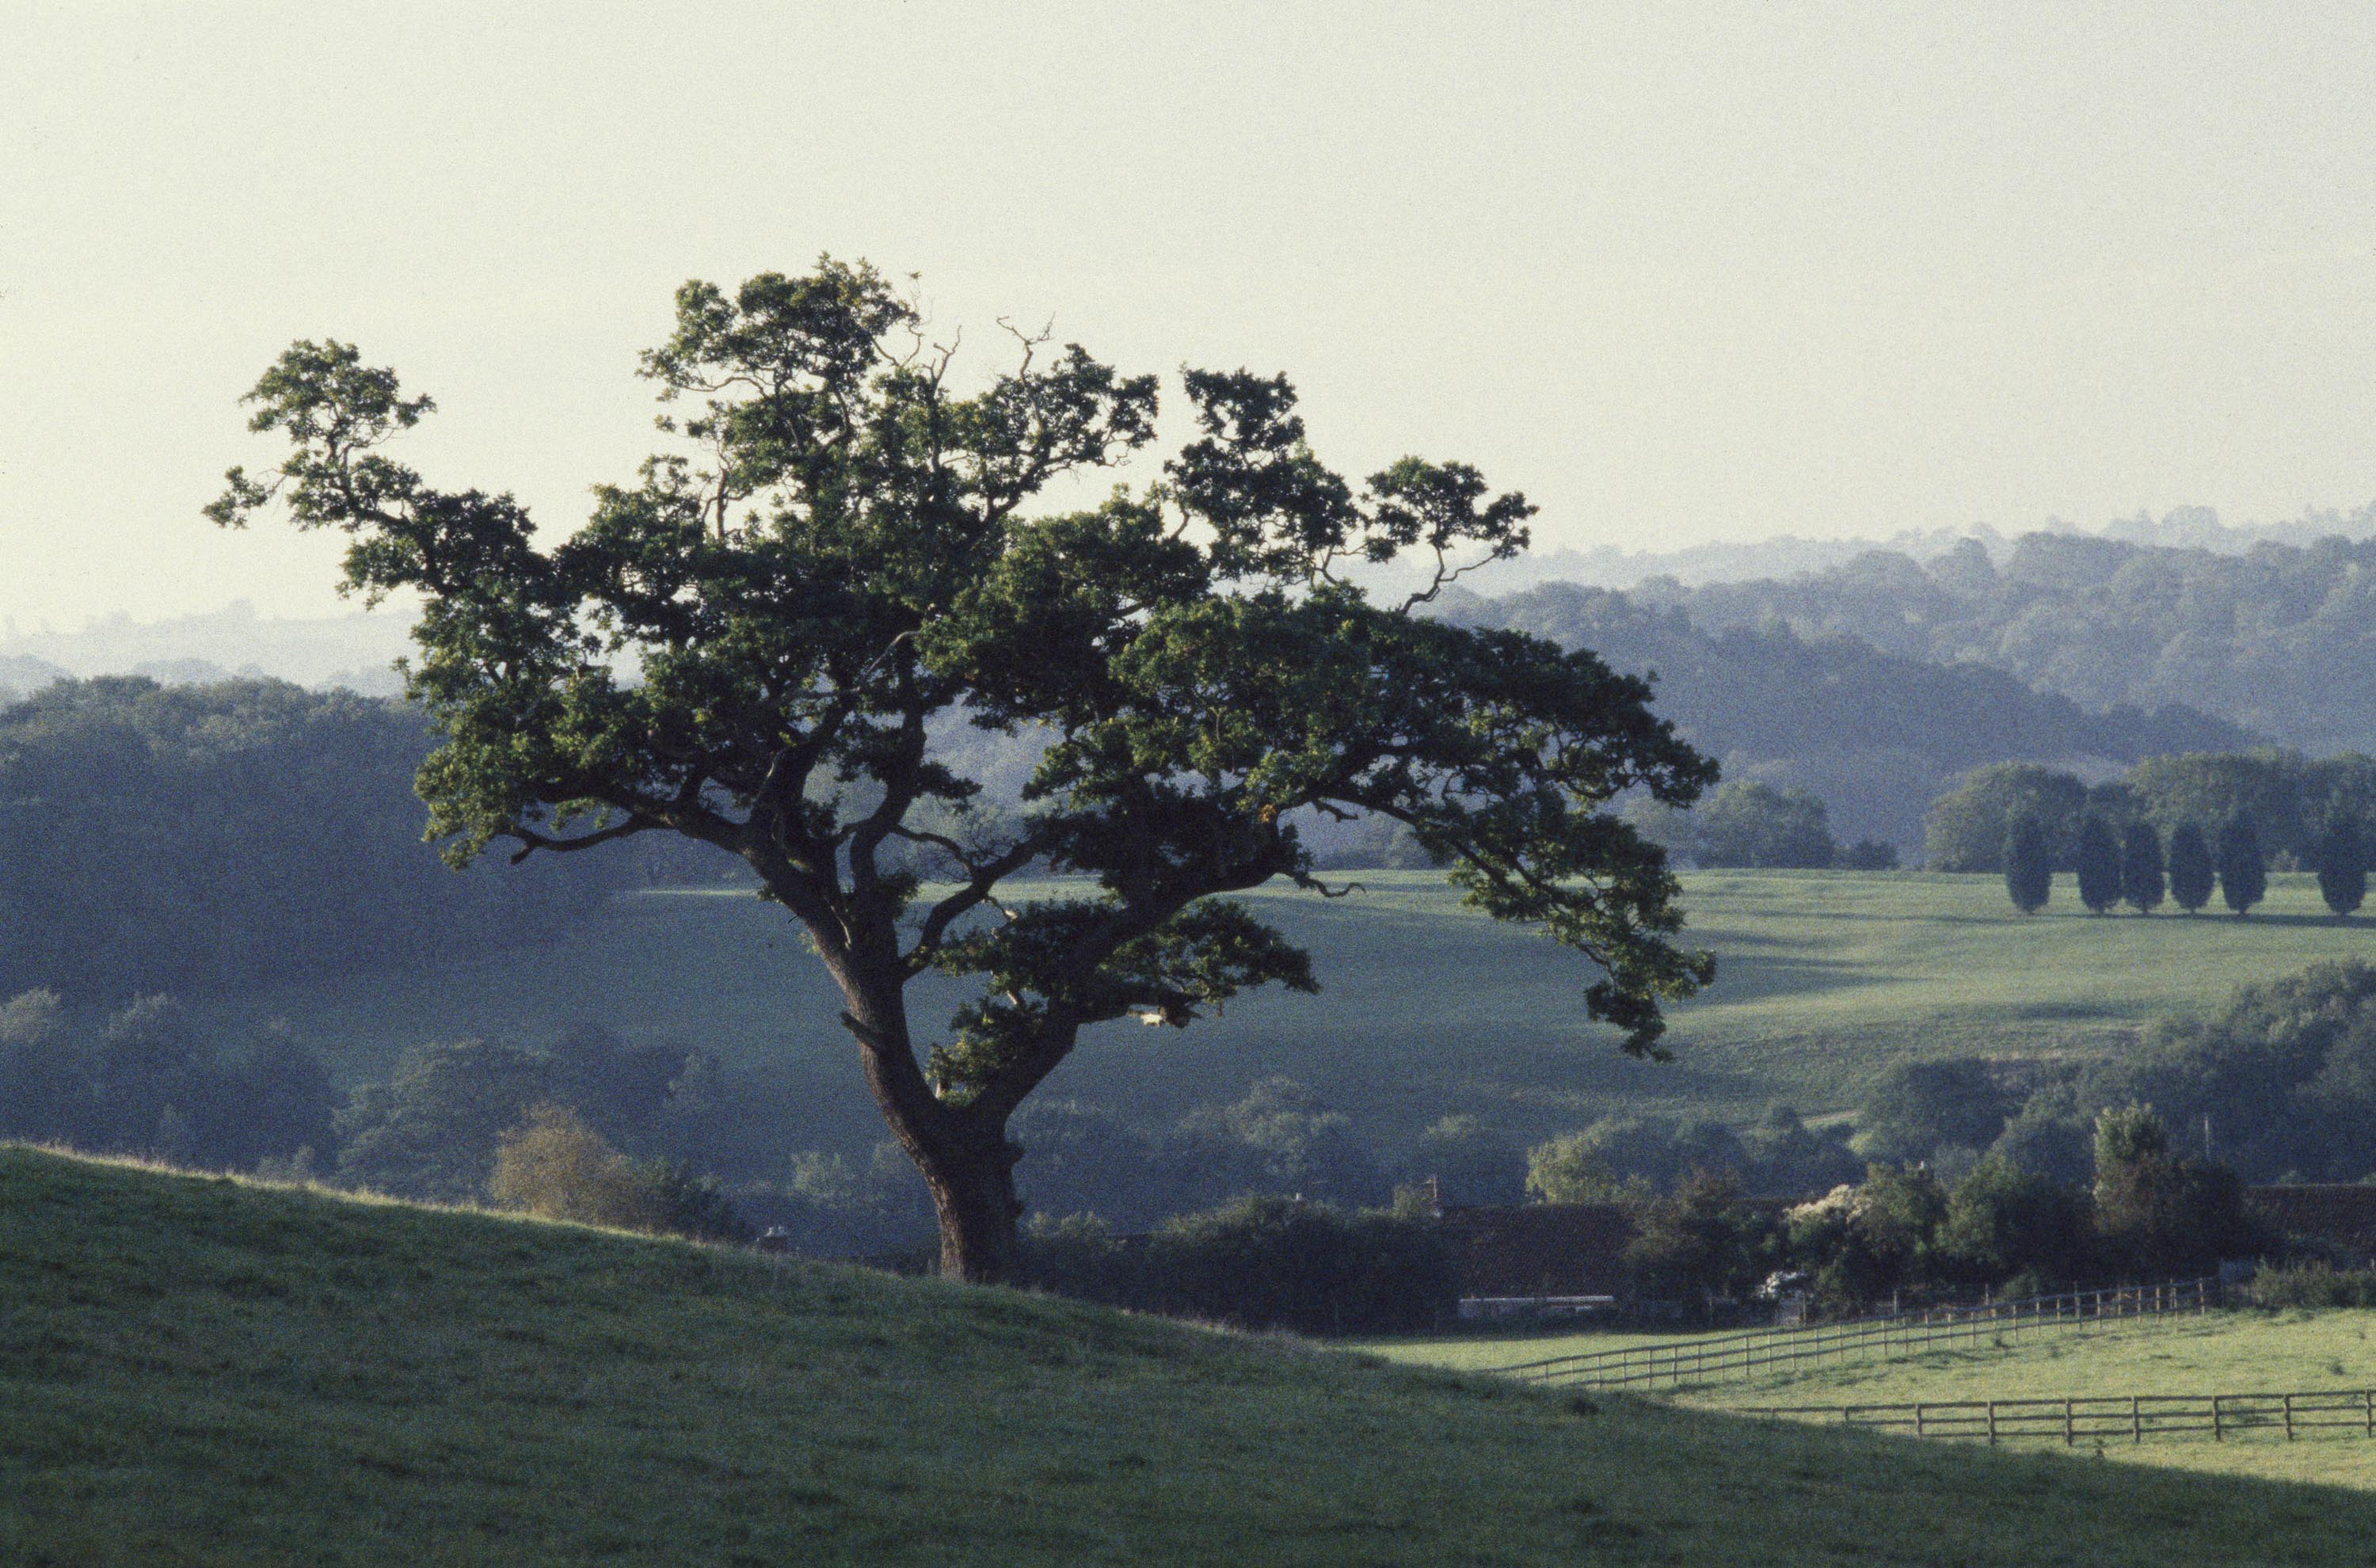 Countryside of the County of Wessex, England, UK